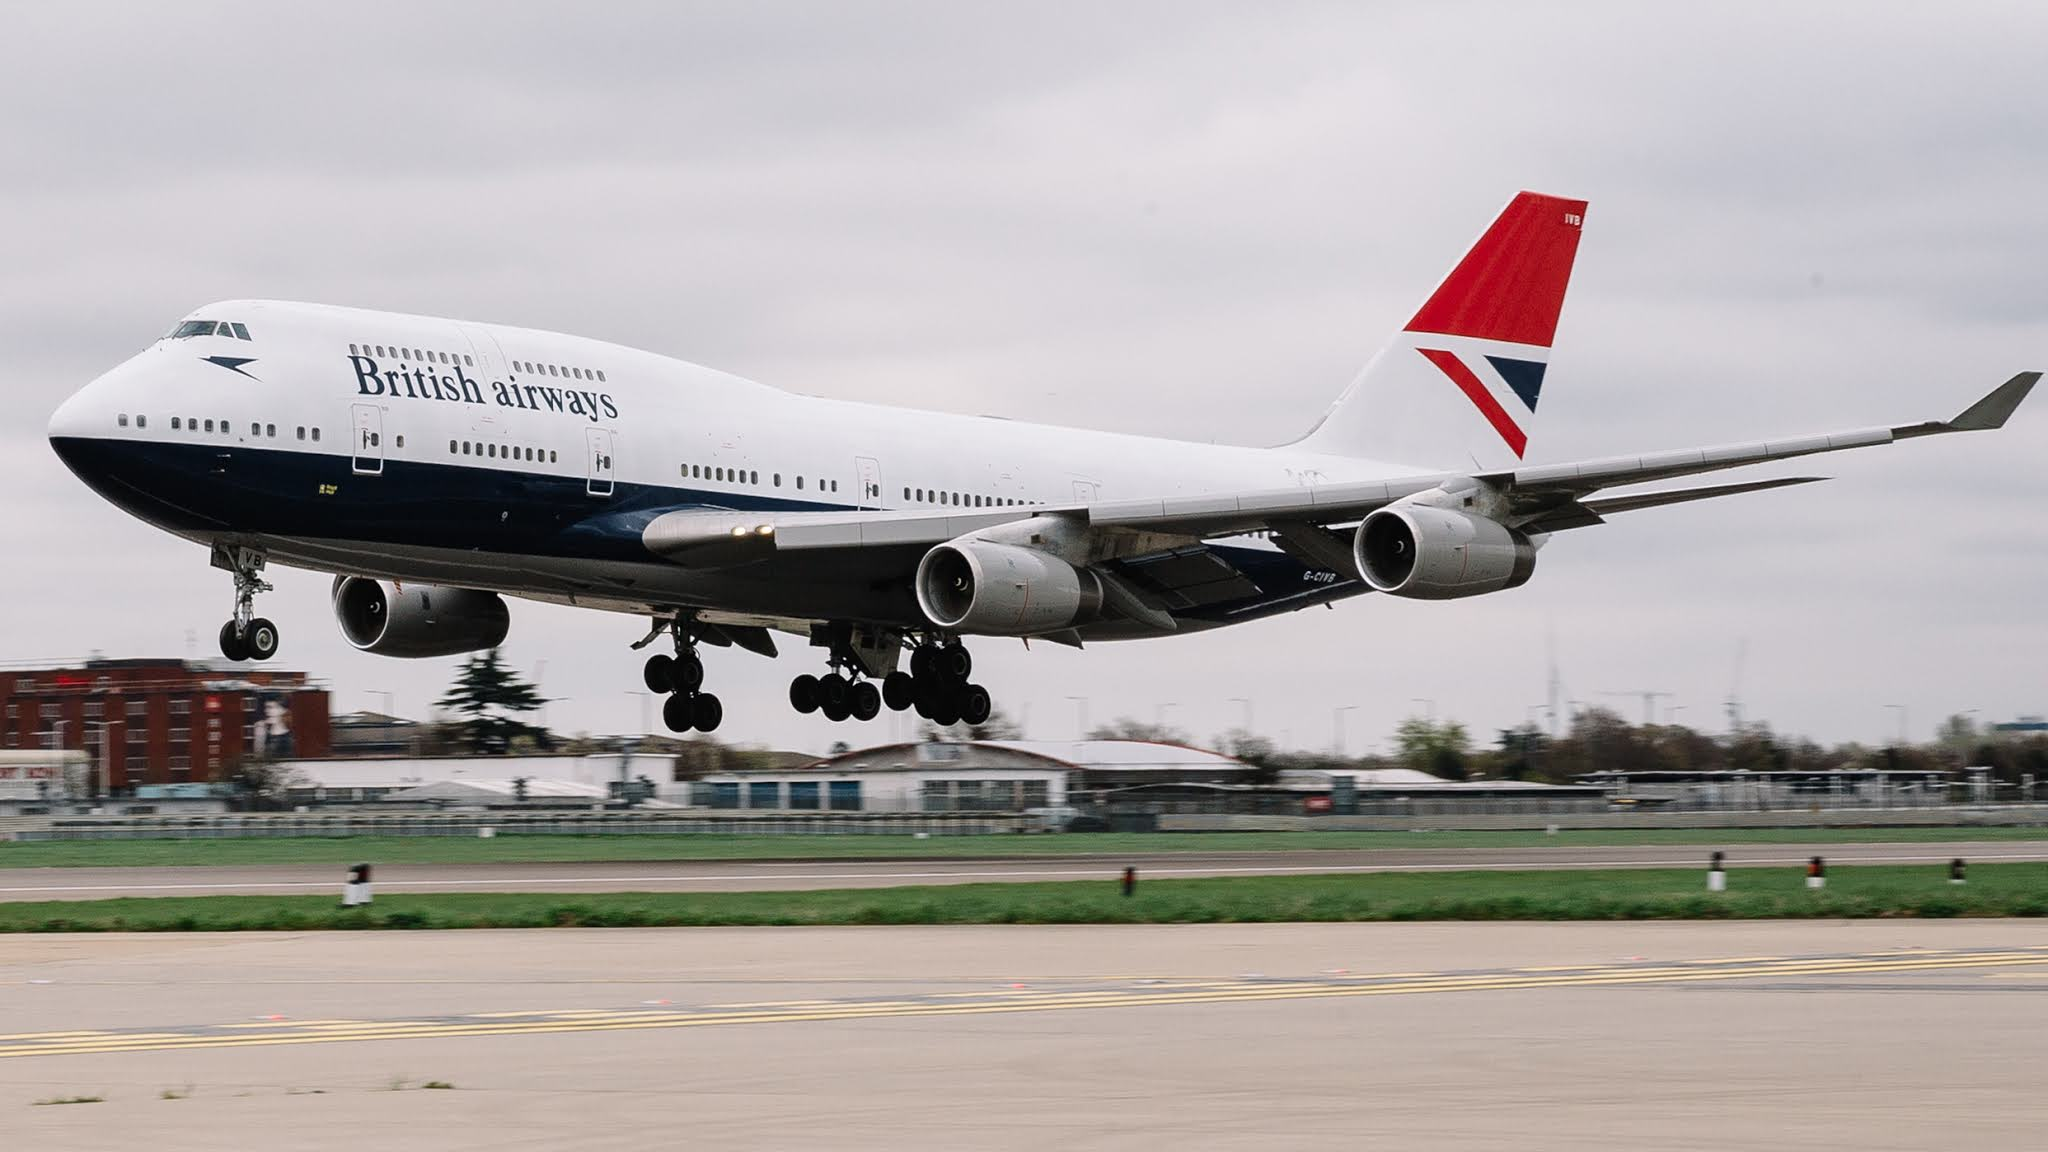 British Airways' last Boeing 747 takes off this morning (8th) from London Heathrow to be retired | MORE THAN FLY